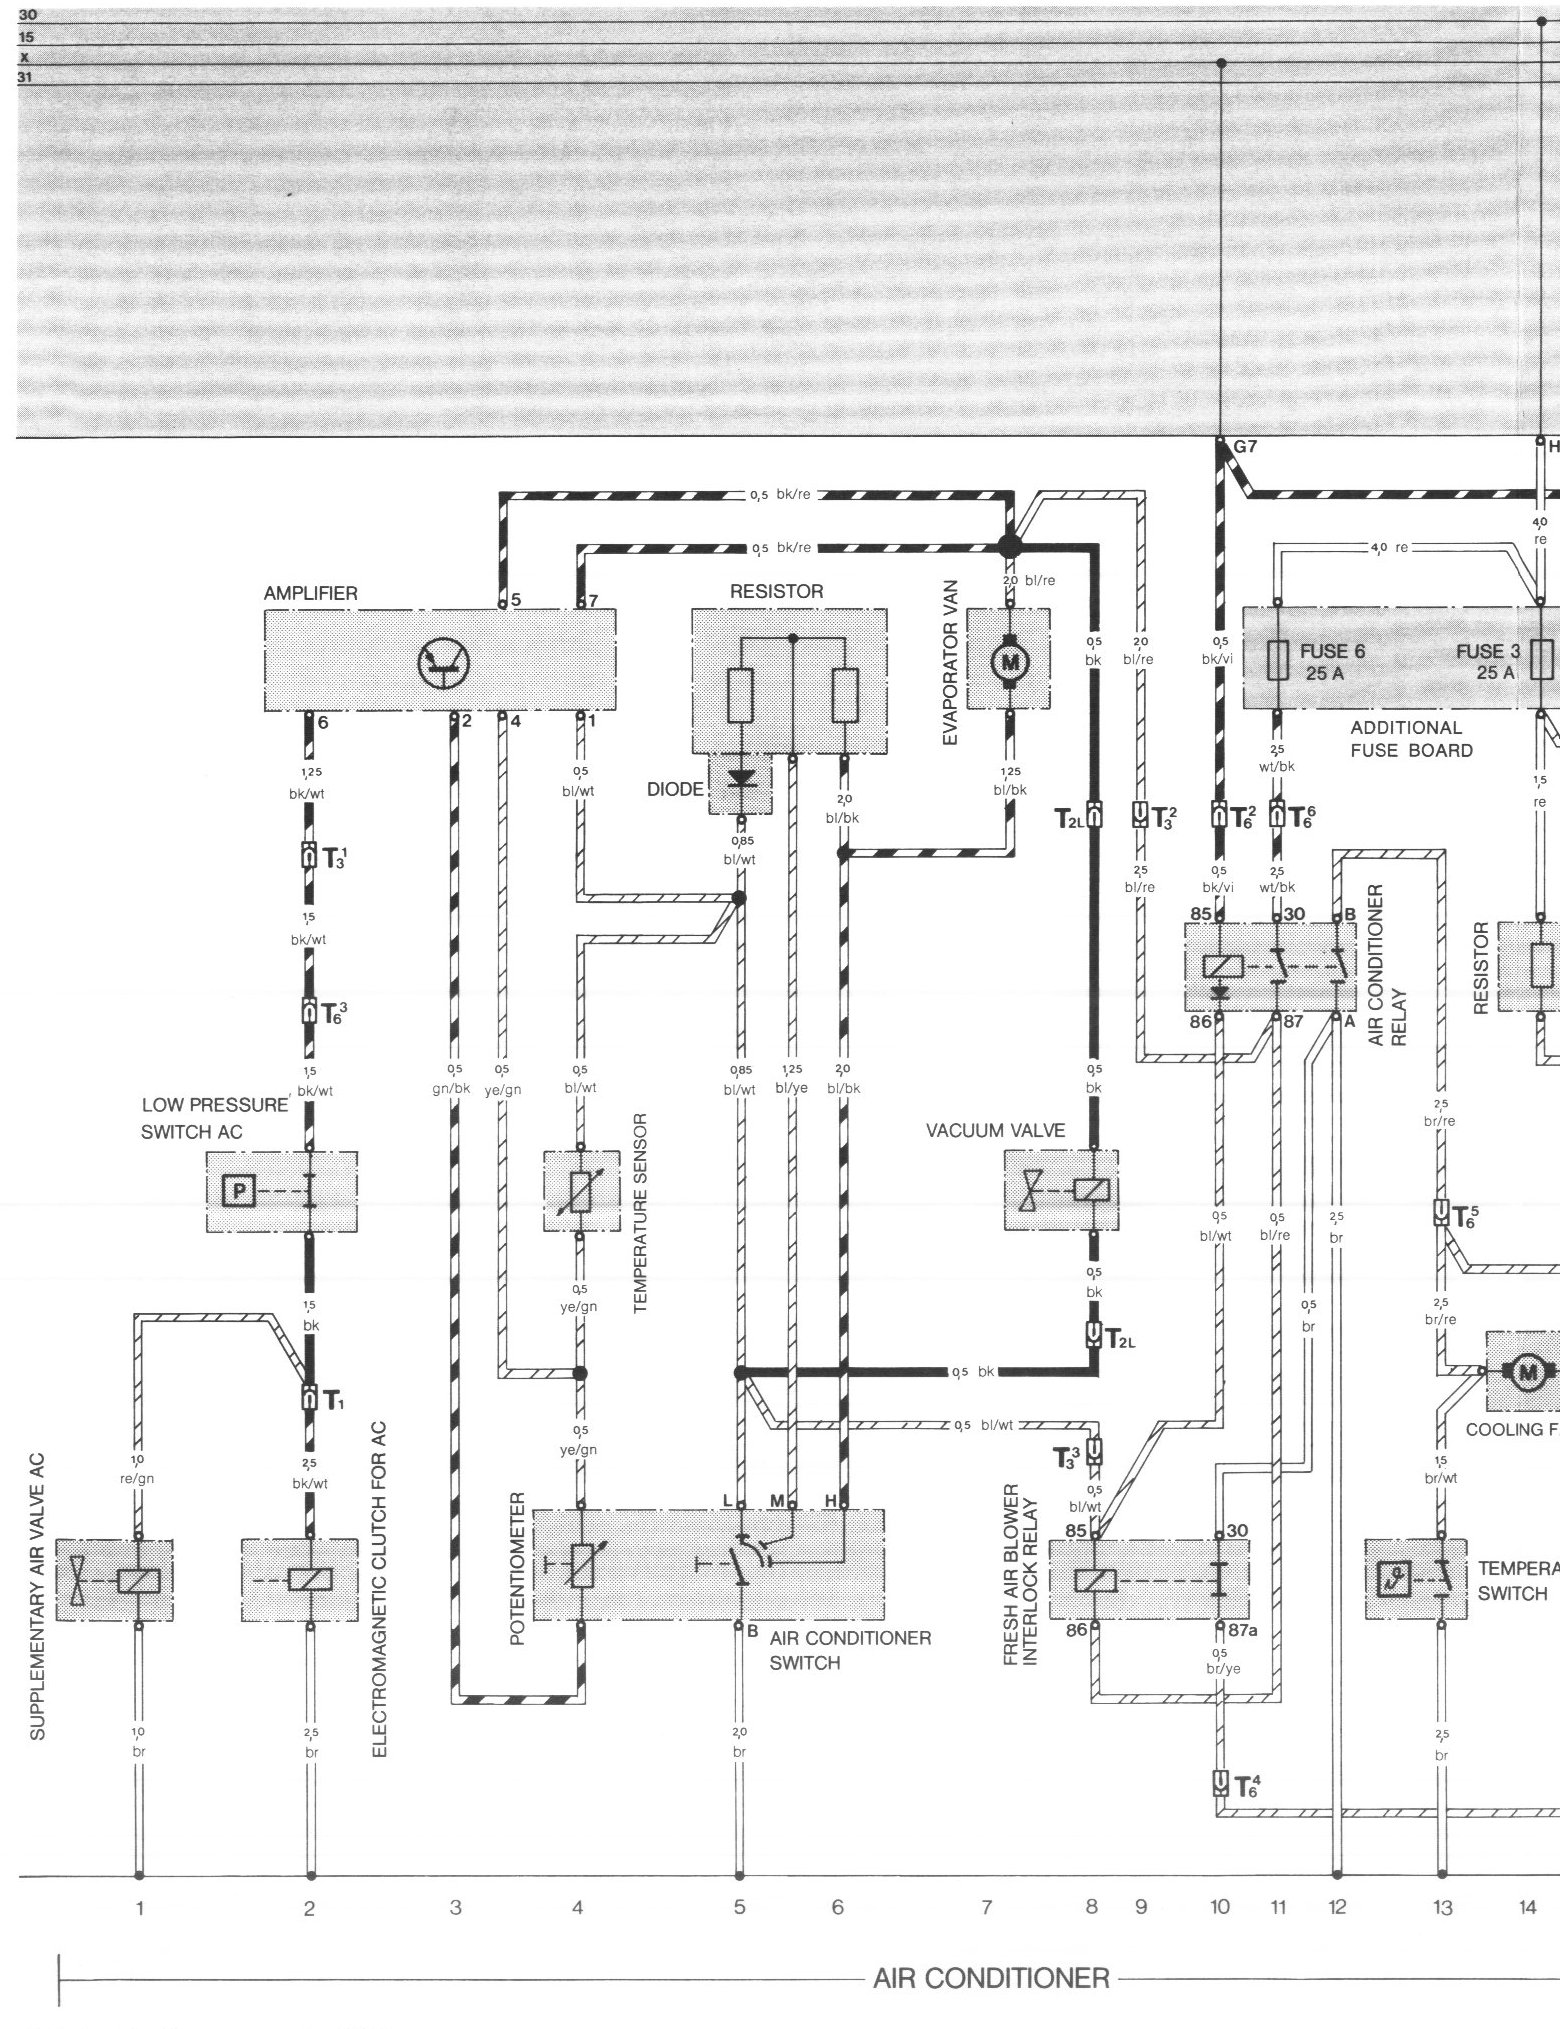 1966 Porsche Engine Diagram Wiring Schematic Library Buick Grand National Pelican Parts 924 944 Electrical Diagrams Rh Pelicanparts Com 914 Schematics